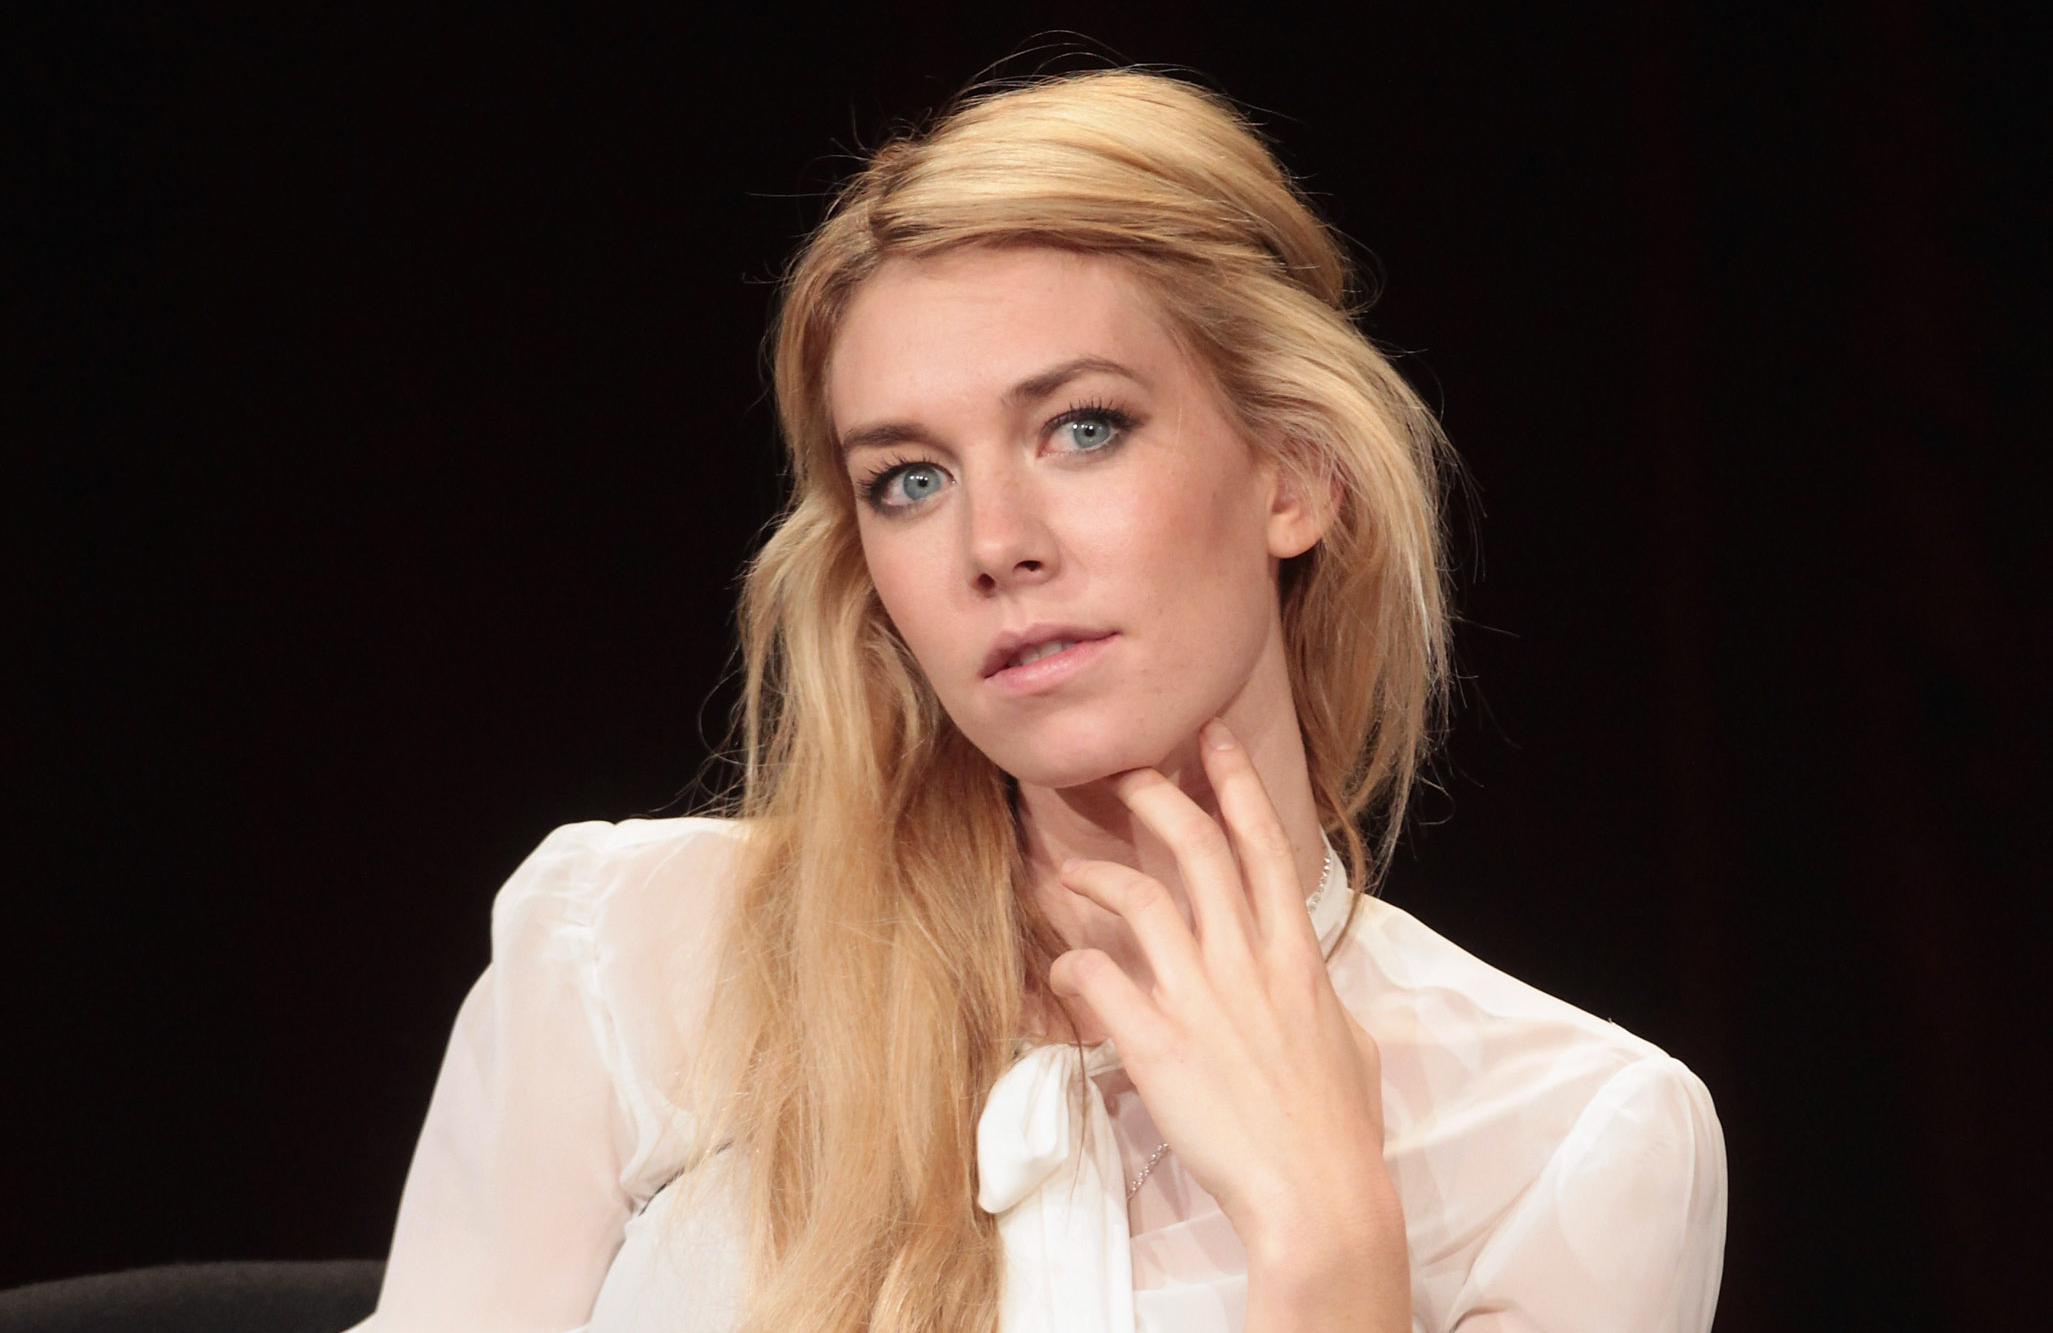 vanessa kirby celebrity wallpaper 65678